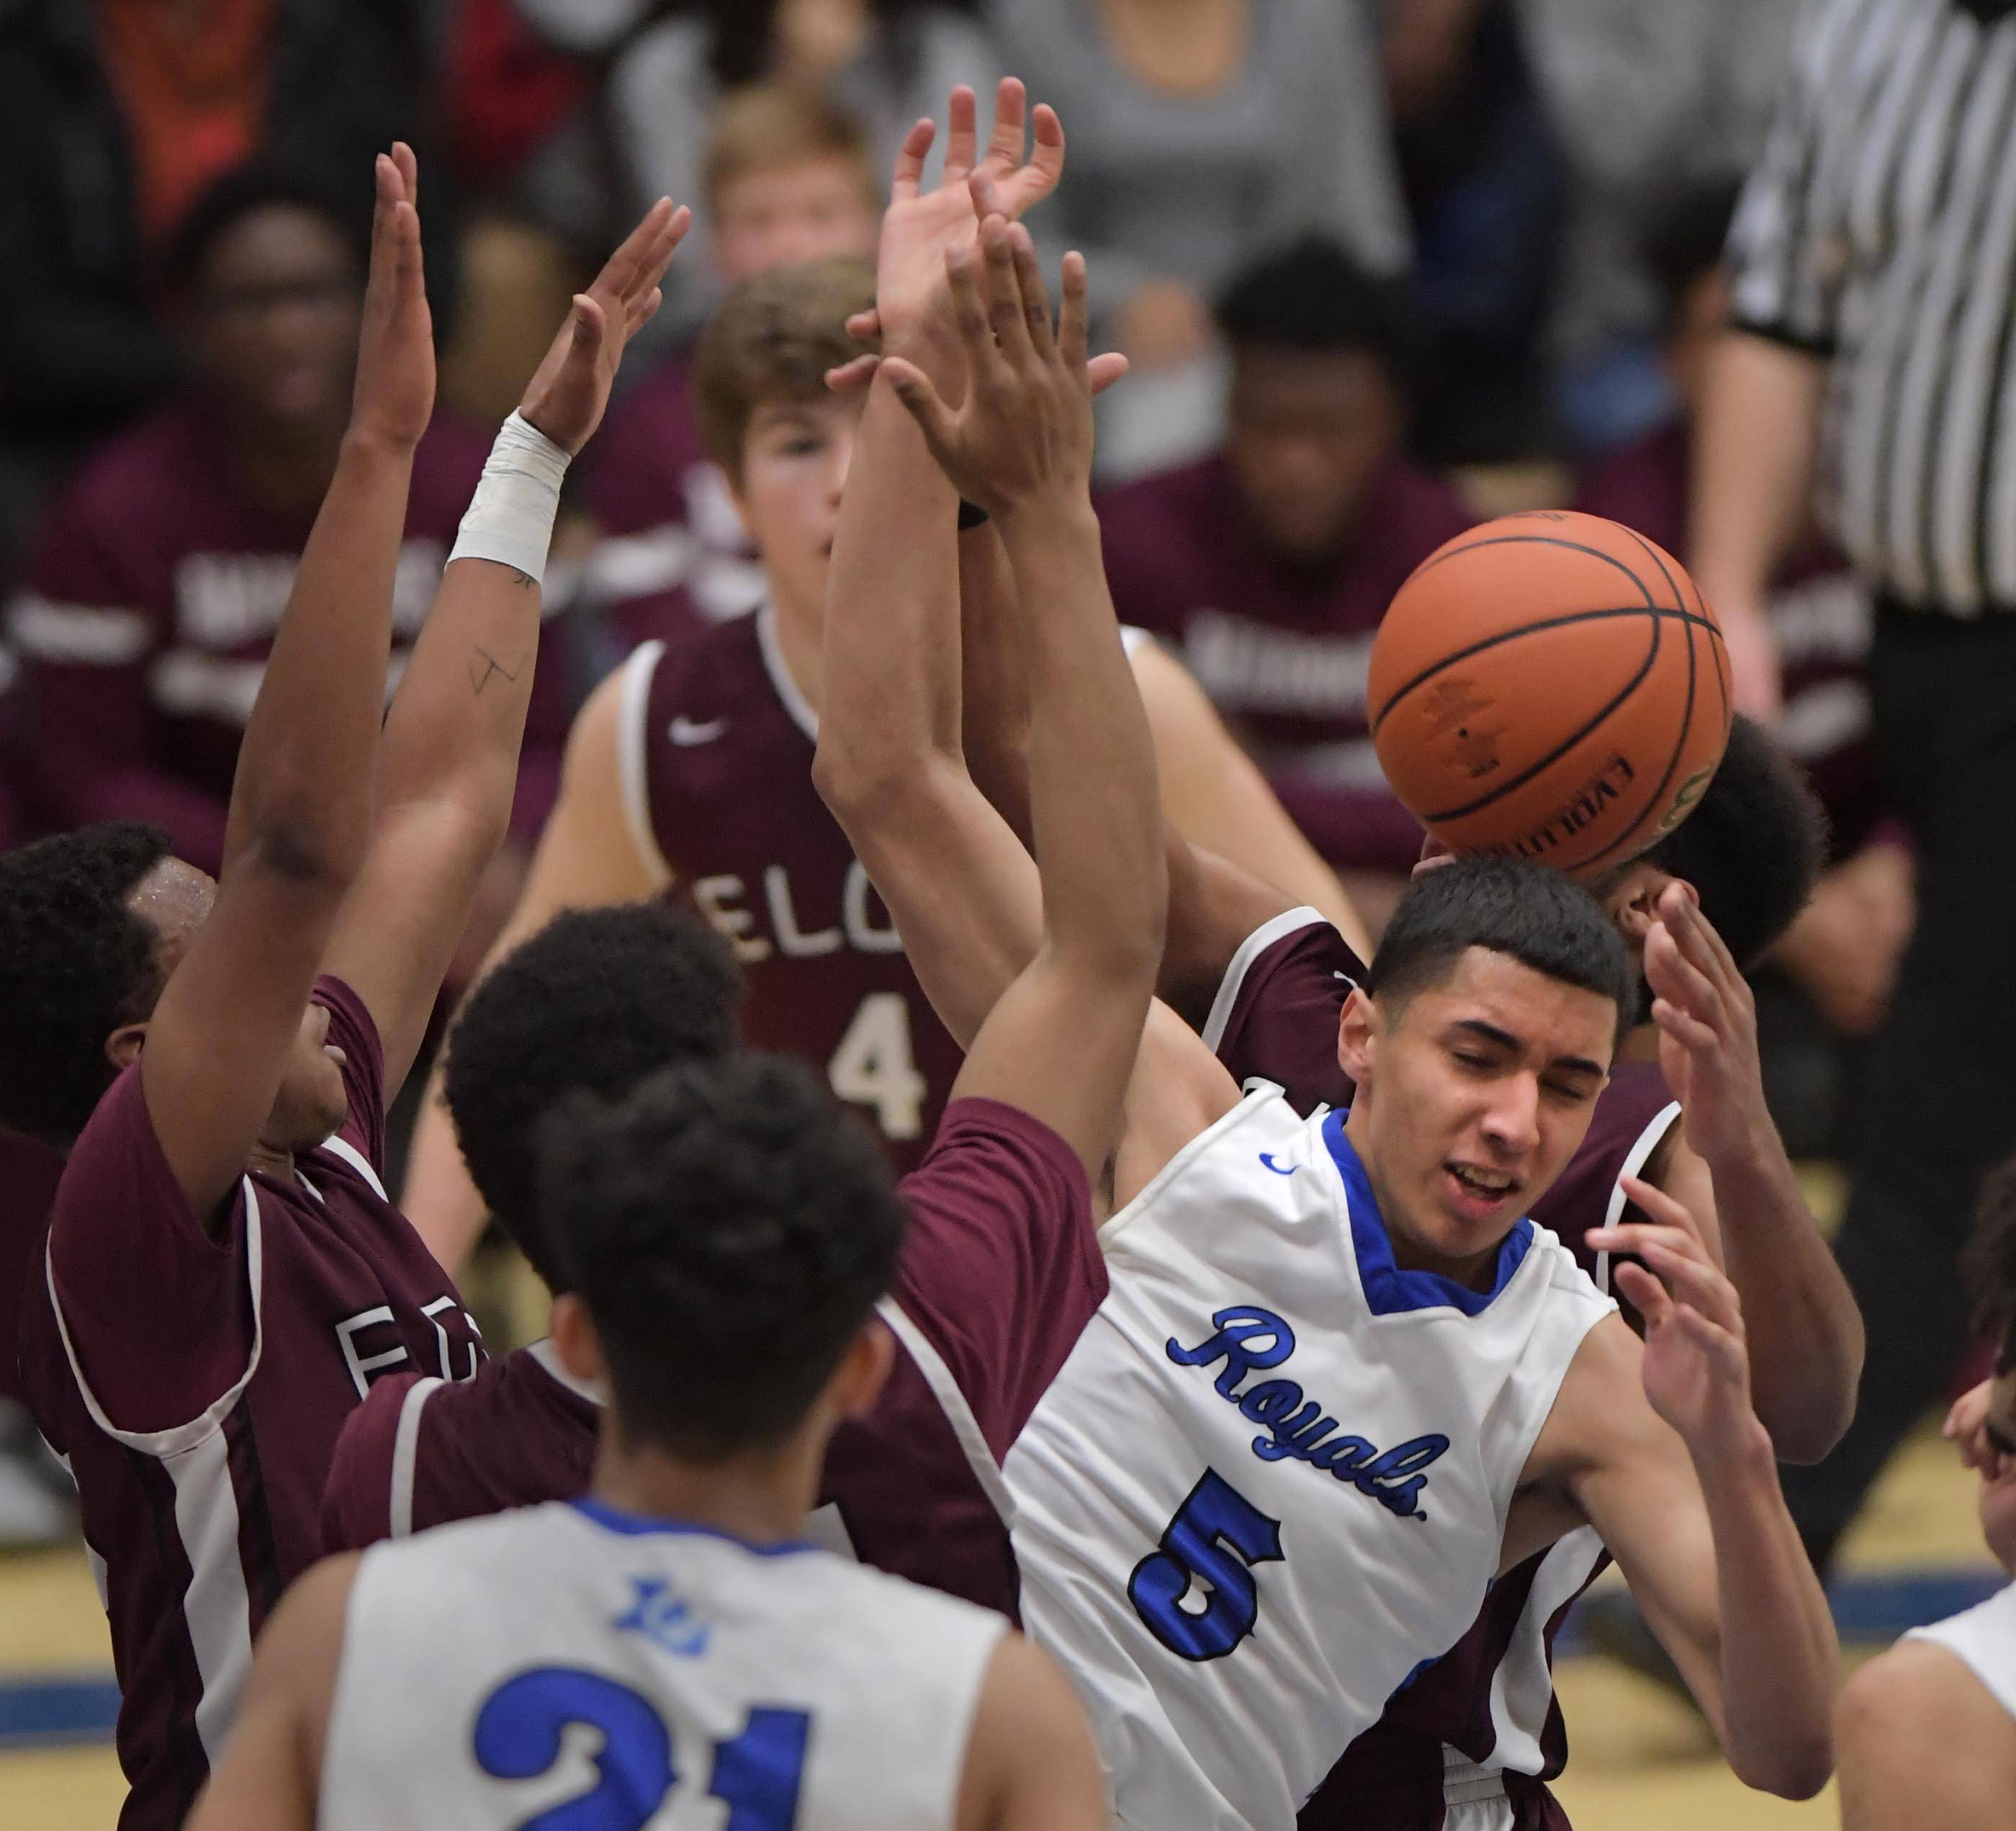 Images: Elgin vs. Larkin, Class 4A regional semifinal boys basketball